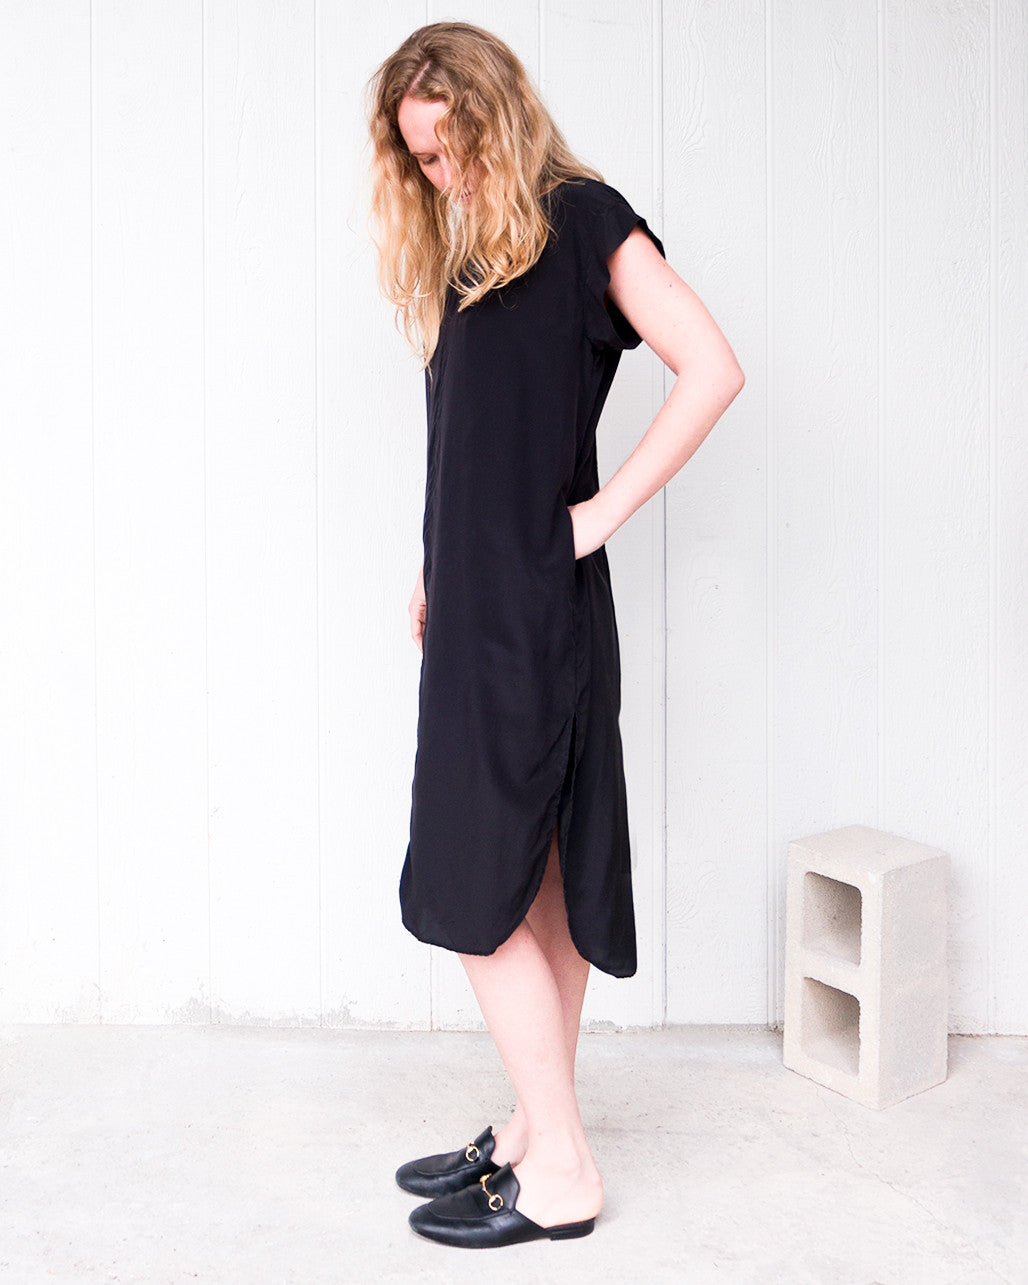 esby-apparel-womenswear-designed-in-austin-made-in-usa-kate-silk-dress-black